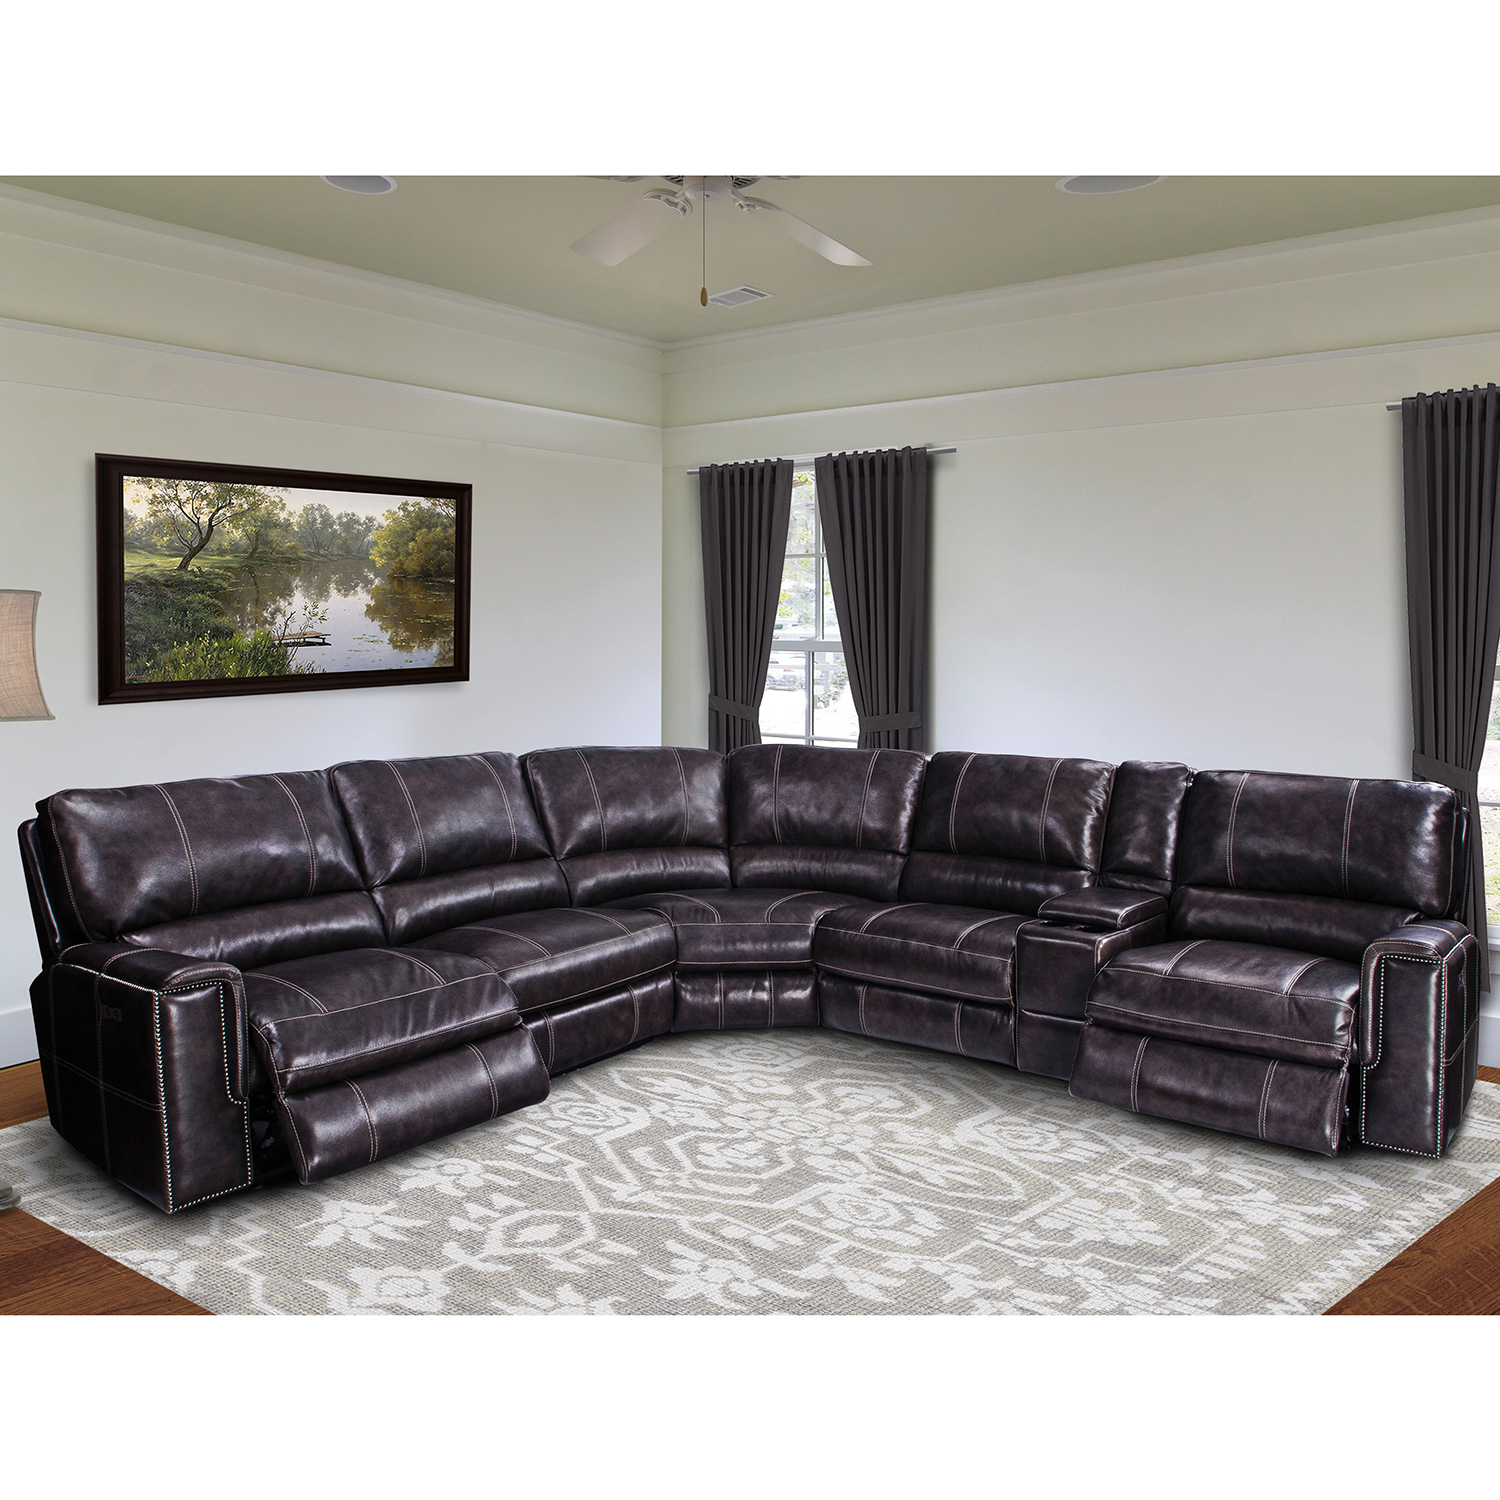 6 Piece Sectional Sofa Page 5 Sofa Reviews & Ratings